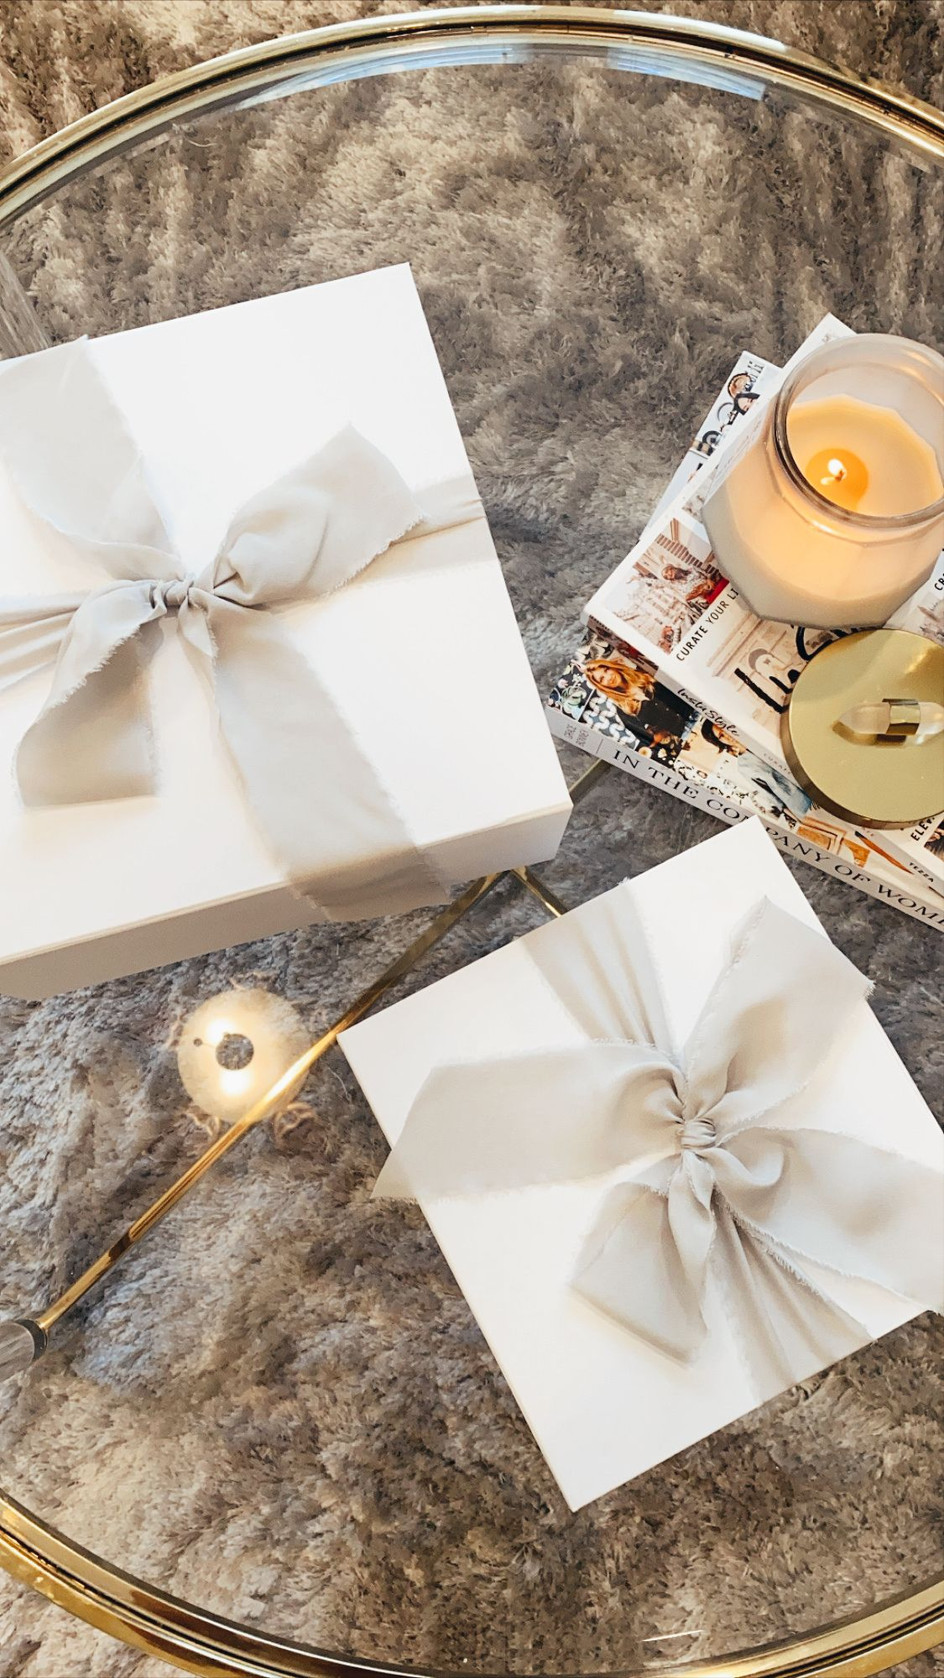 From Buckhead With Love - Gift Giving Made Easy With The Buckhead Gift Company